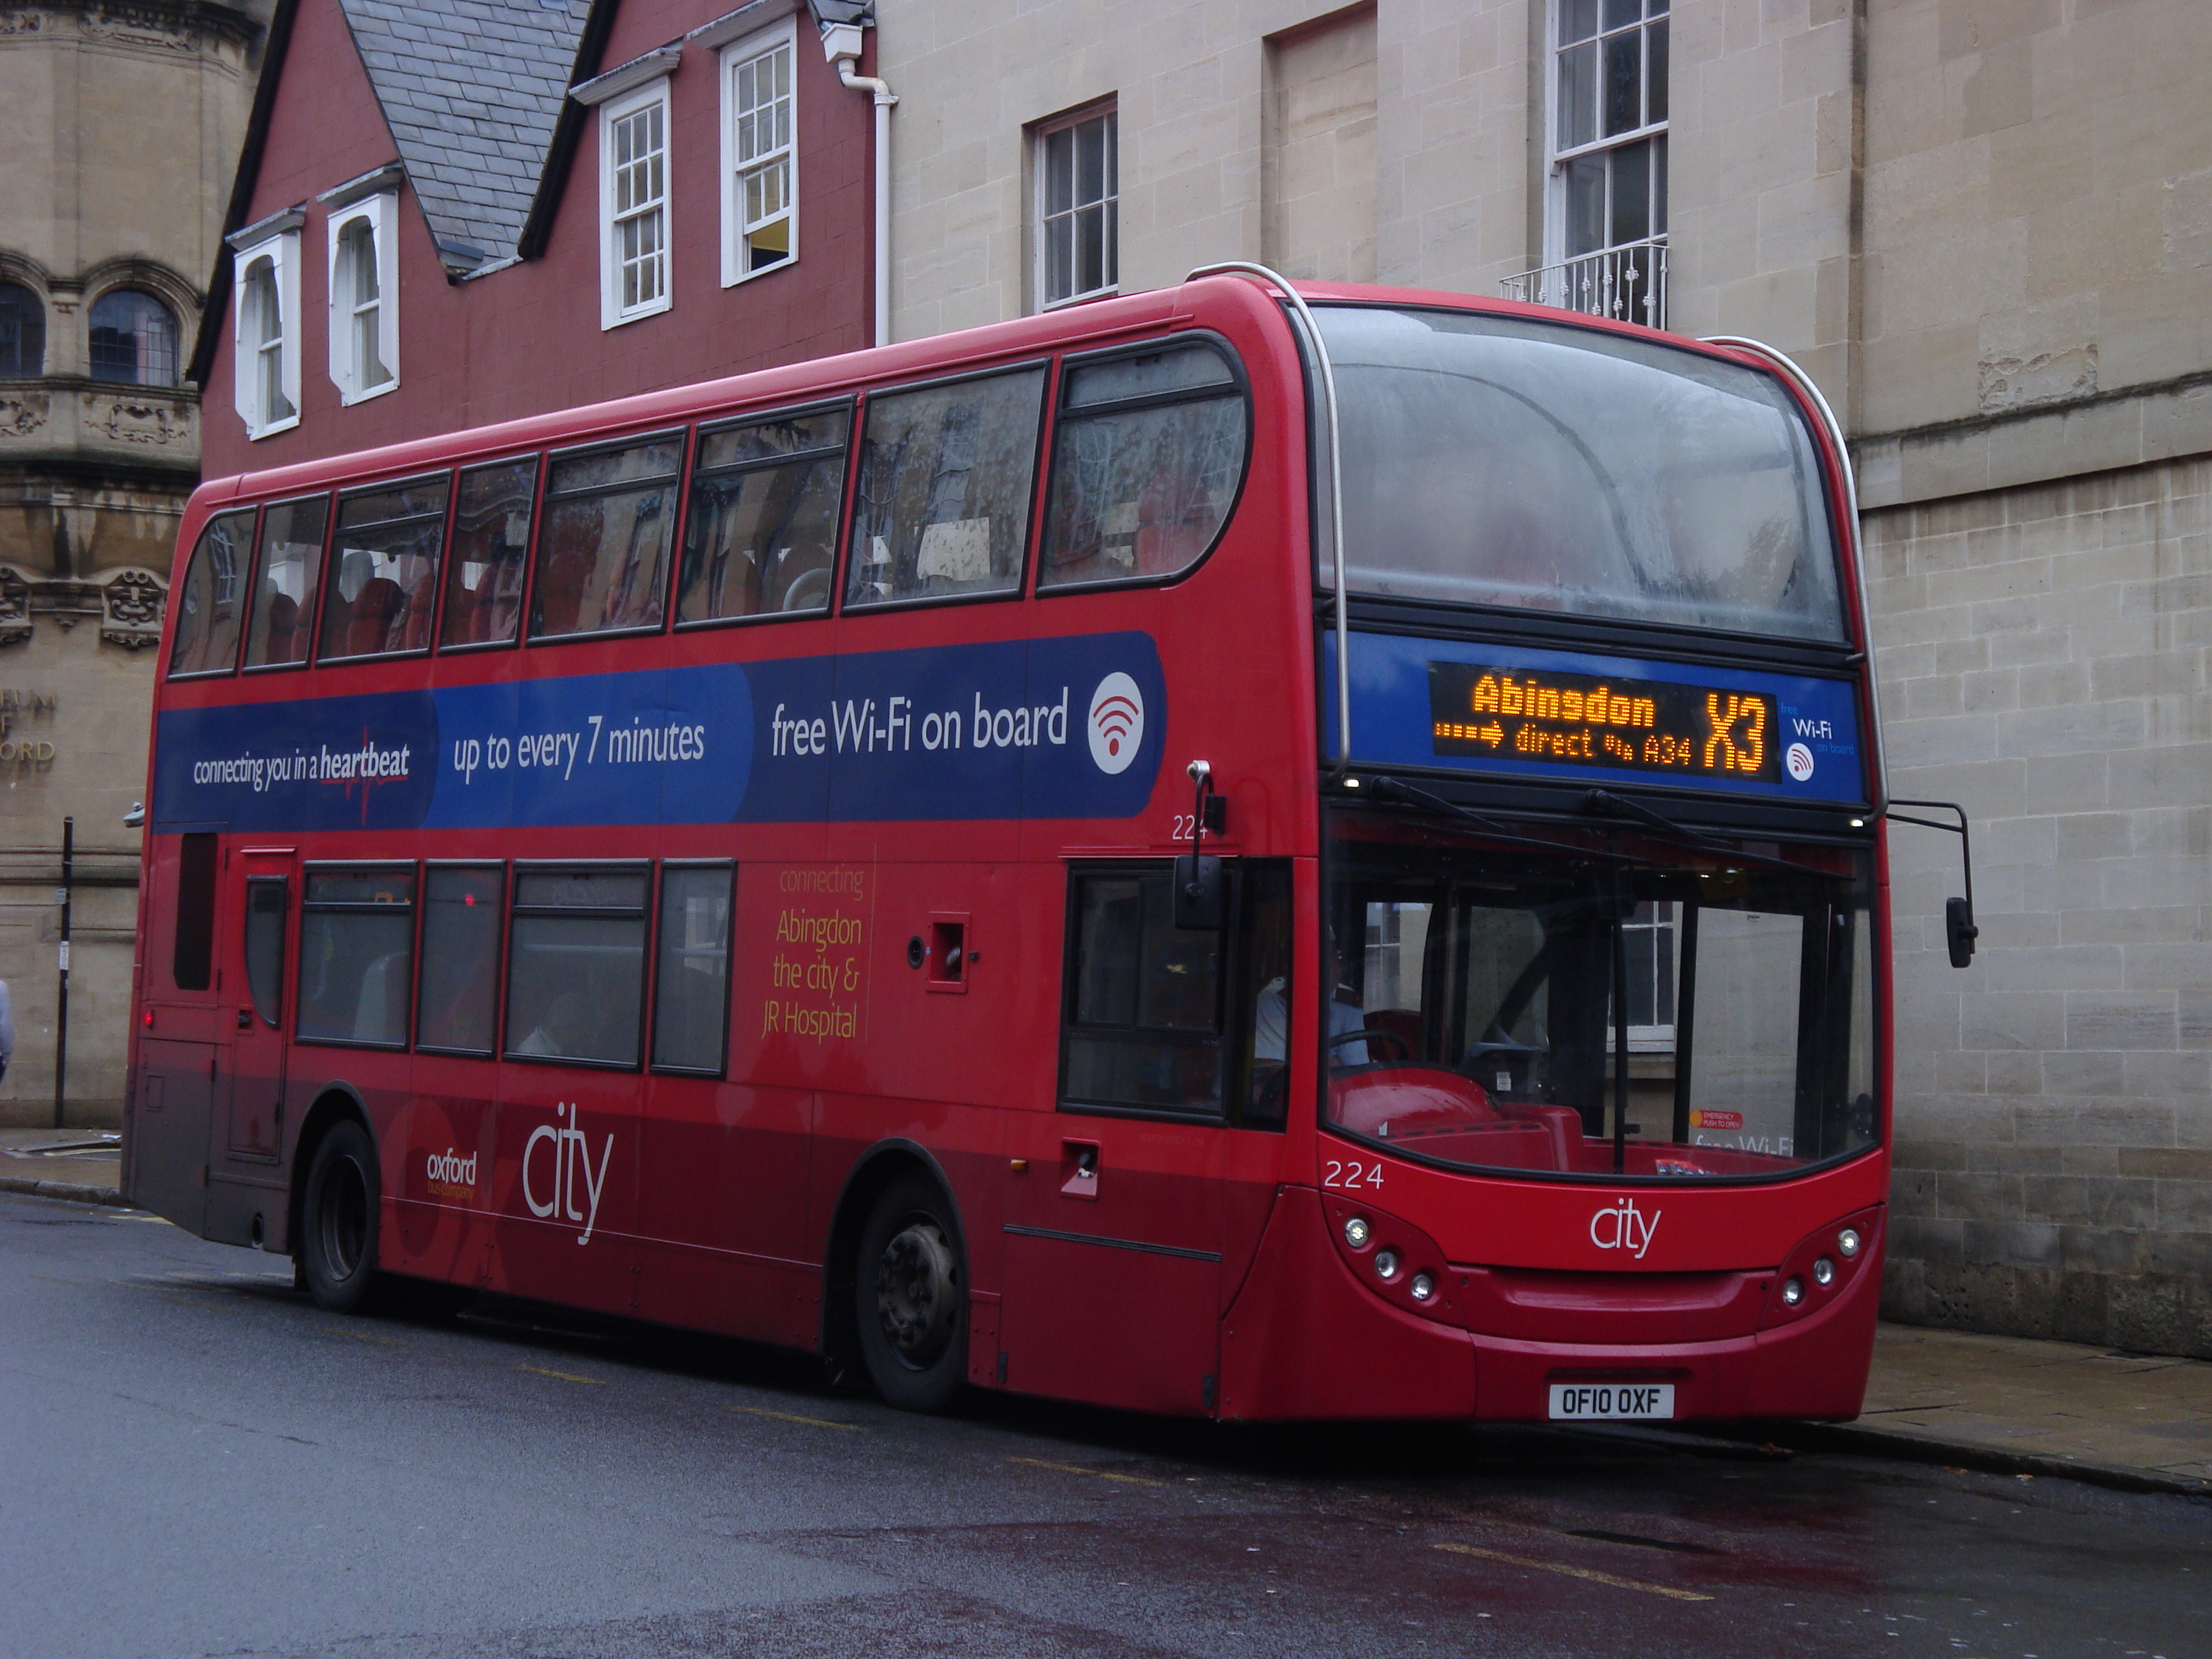 file:oxford bus company 224 on route x3, oxford city centre